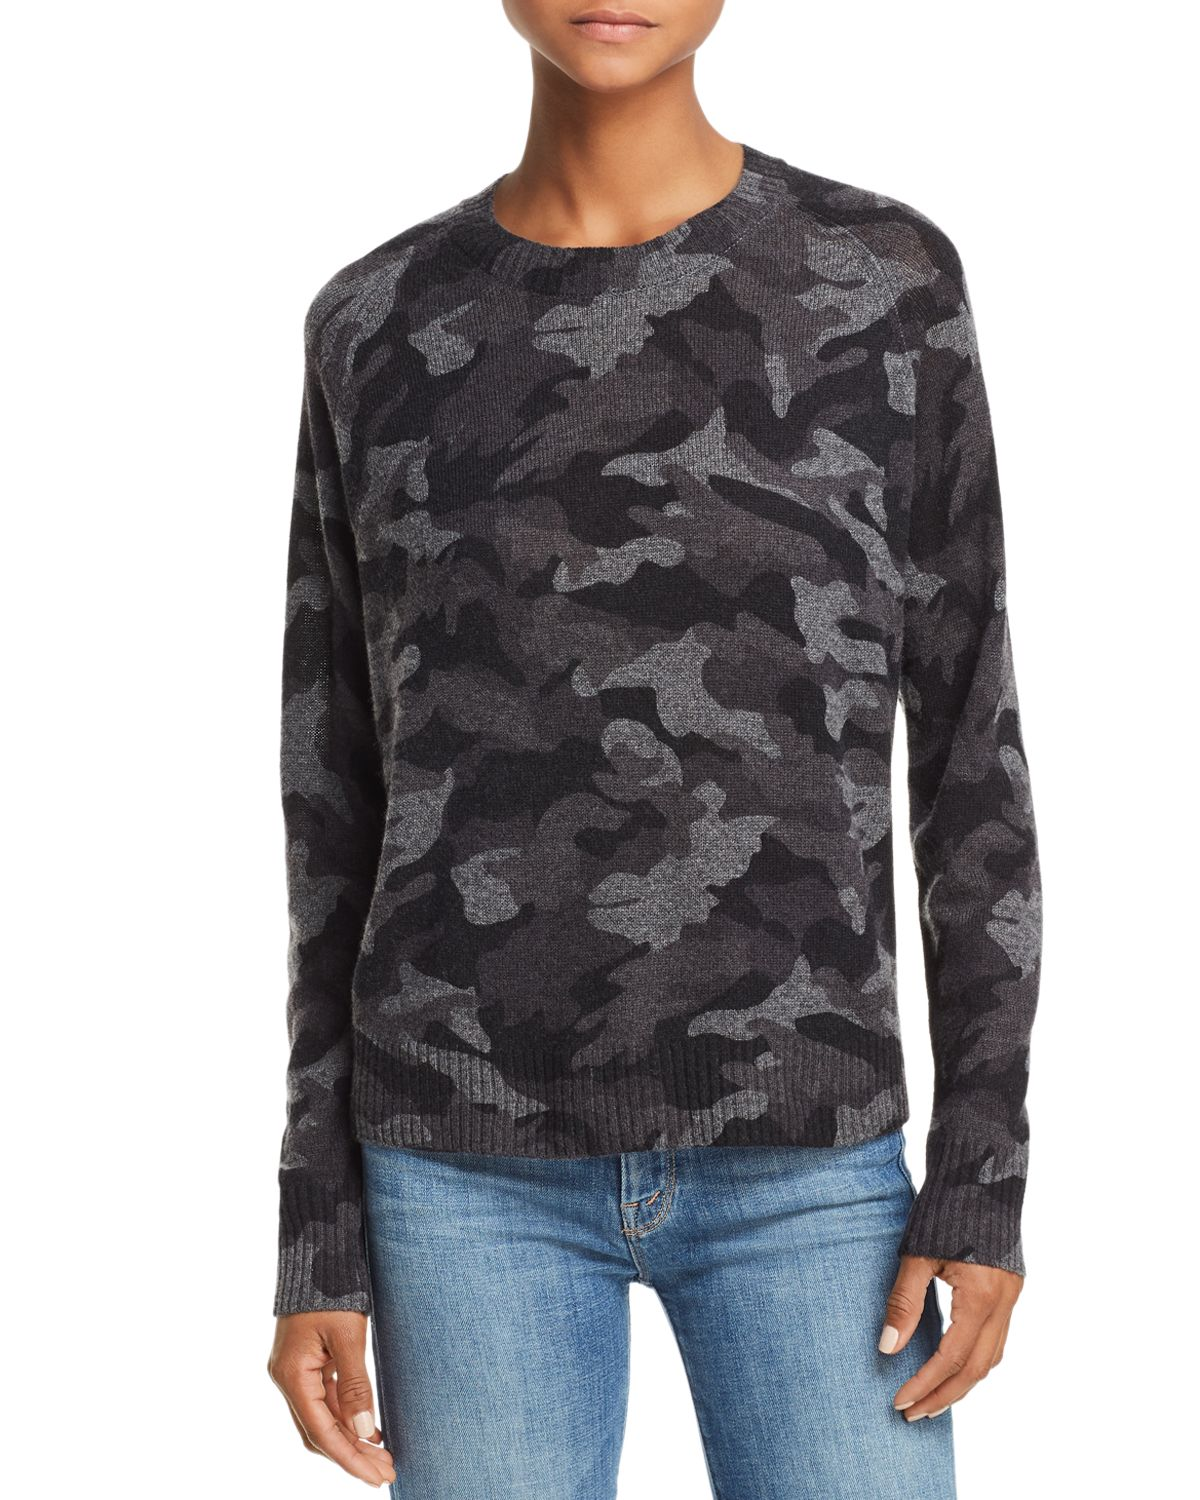 Camo Crewneck Cashmere Sweater   100 Percents Exclusive by Aqua